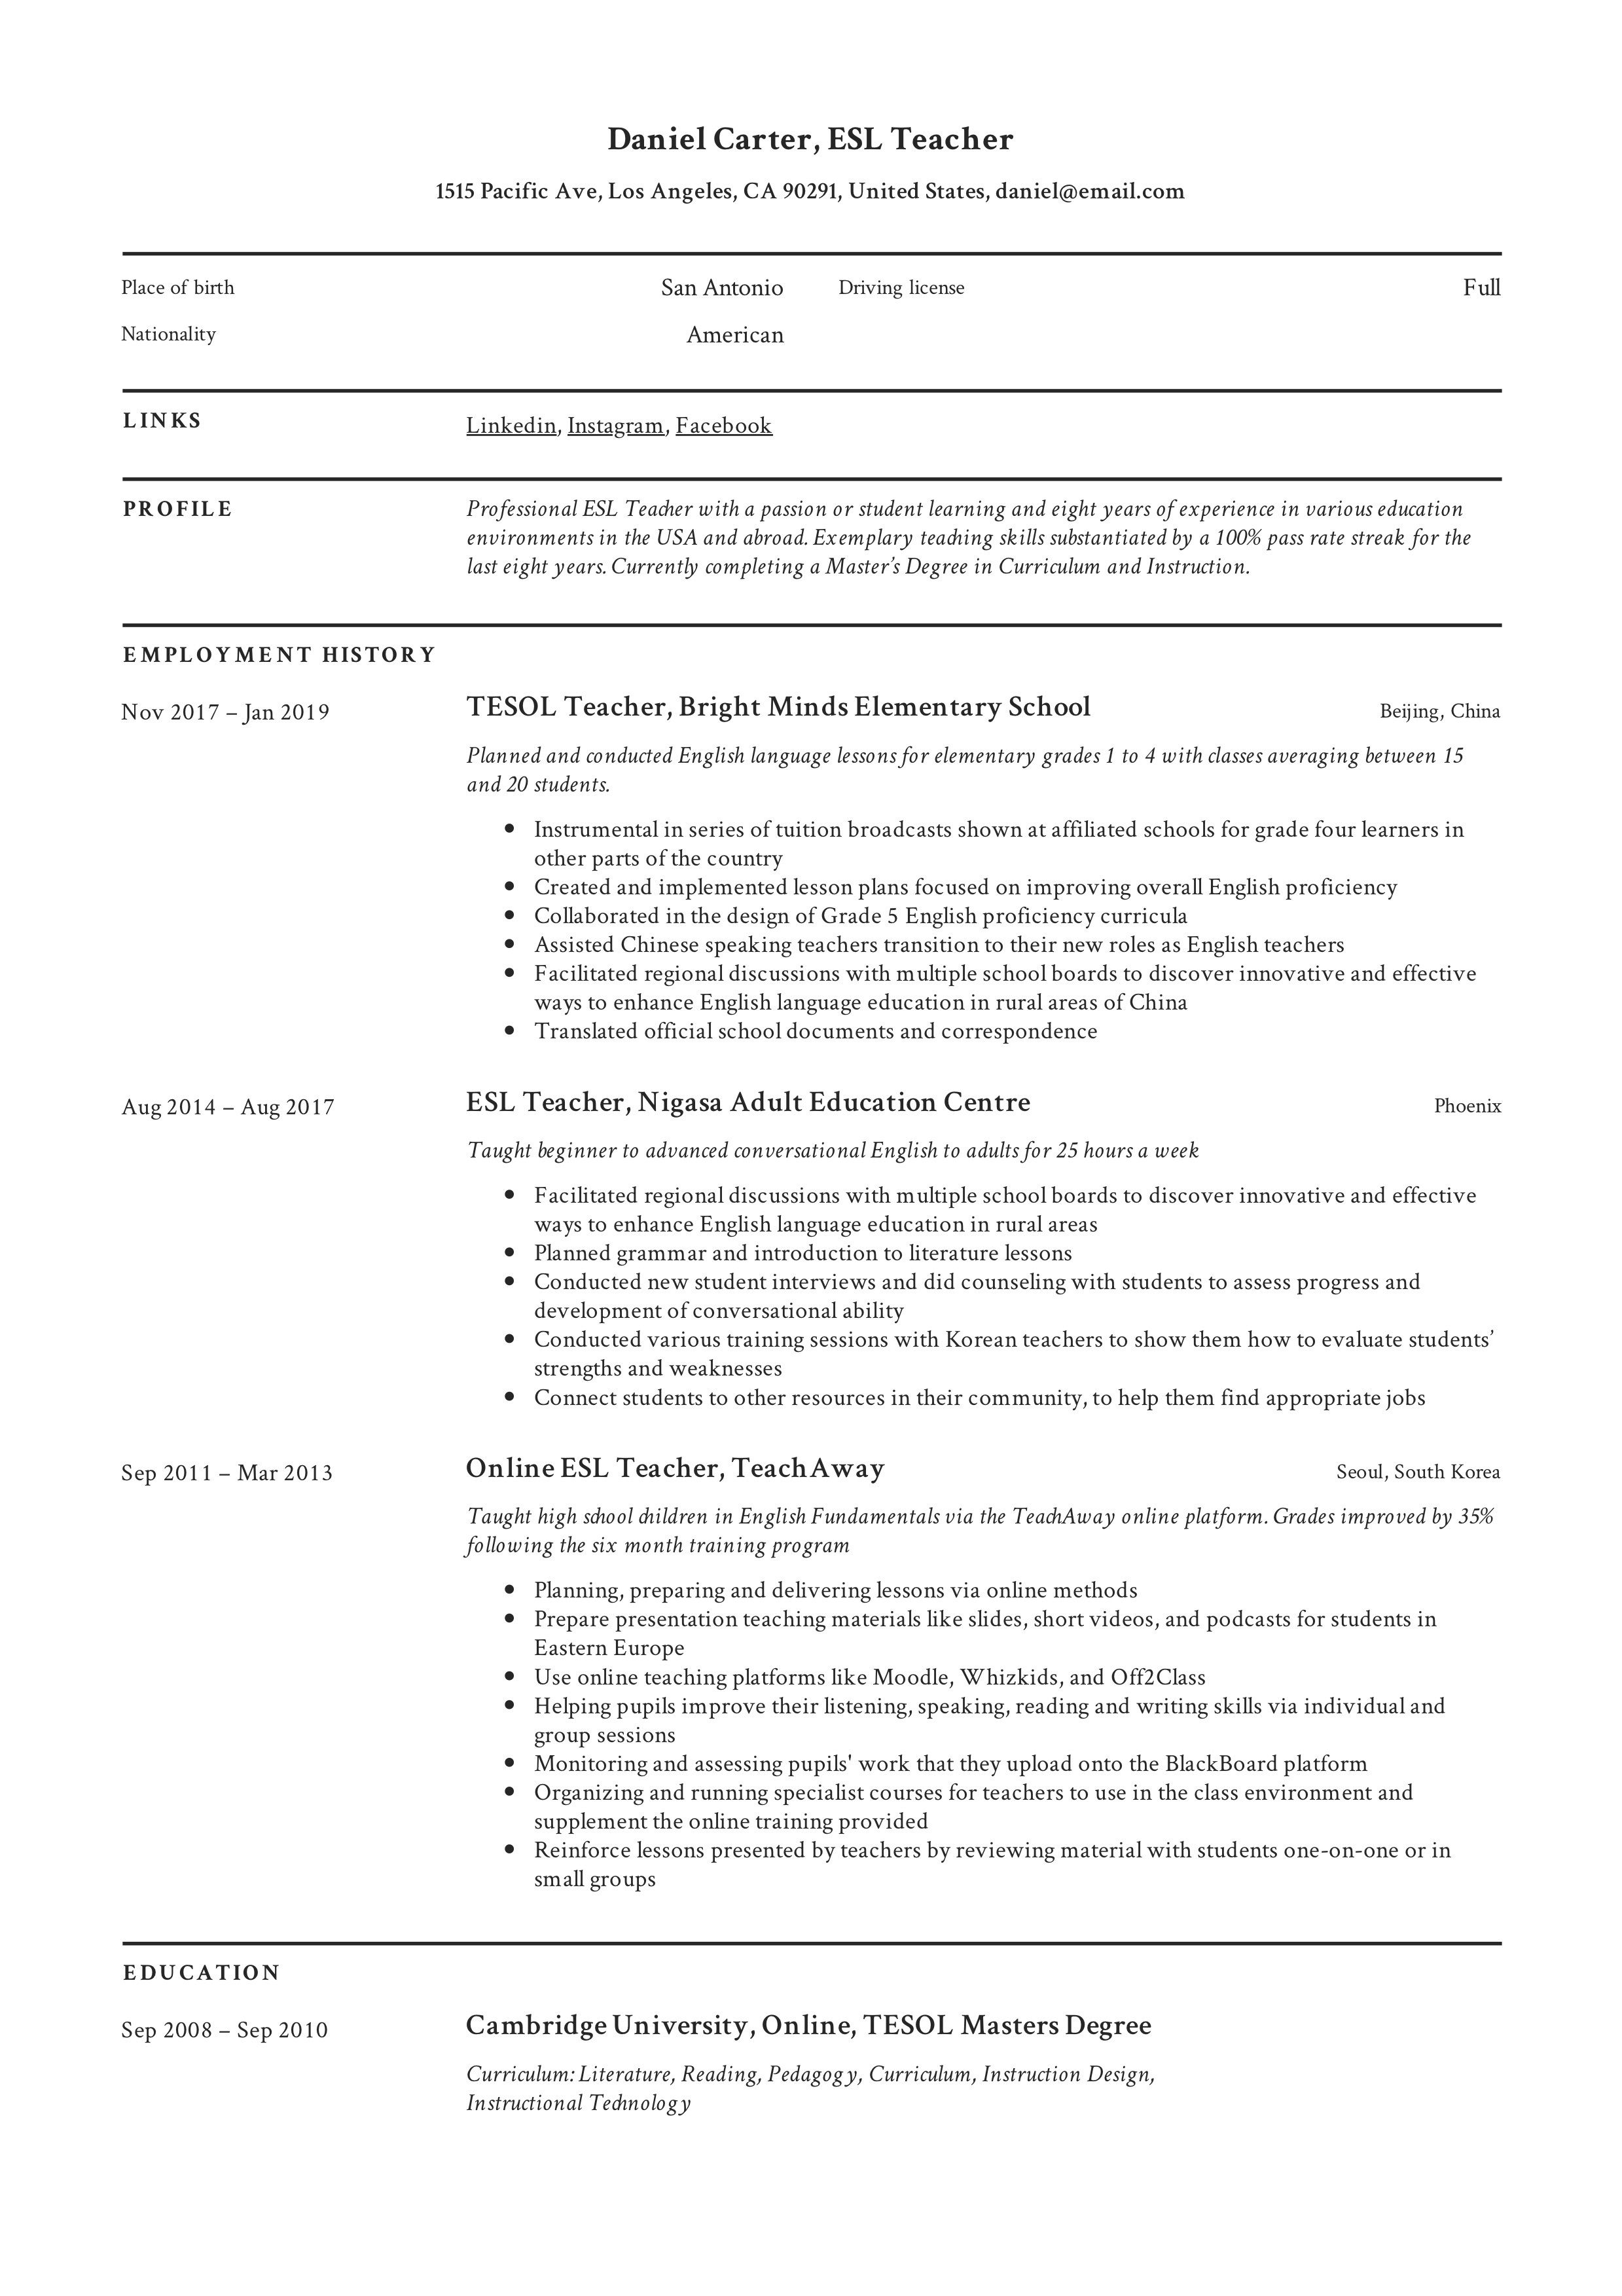 004 Dreaded Good Resume For Teaching Job Image  Sample Teacher Fresher In IndiaFull